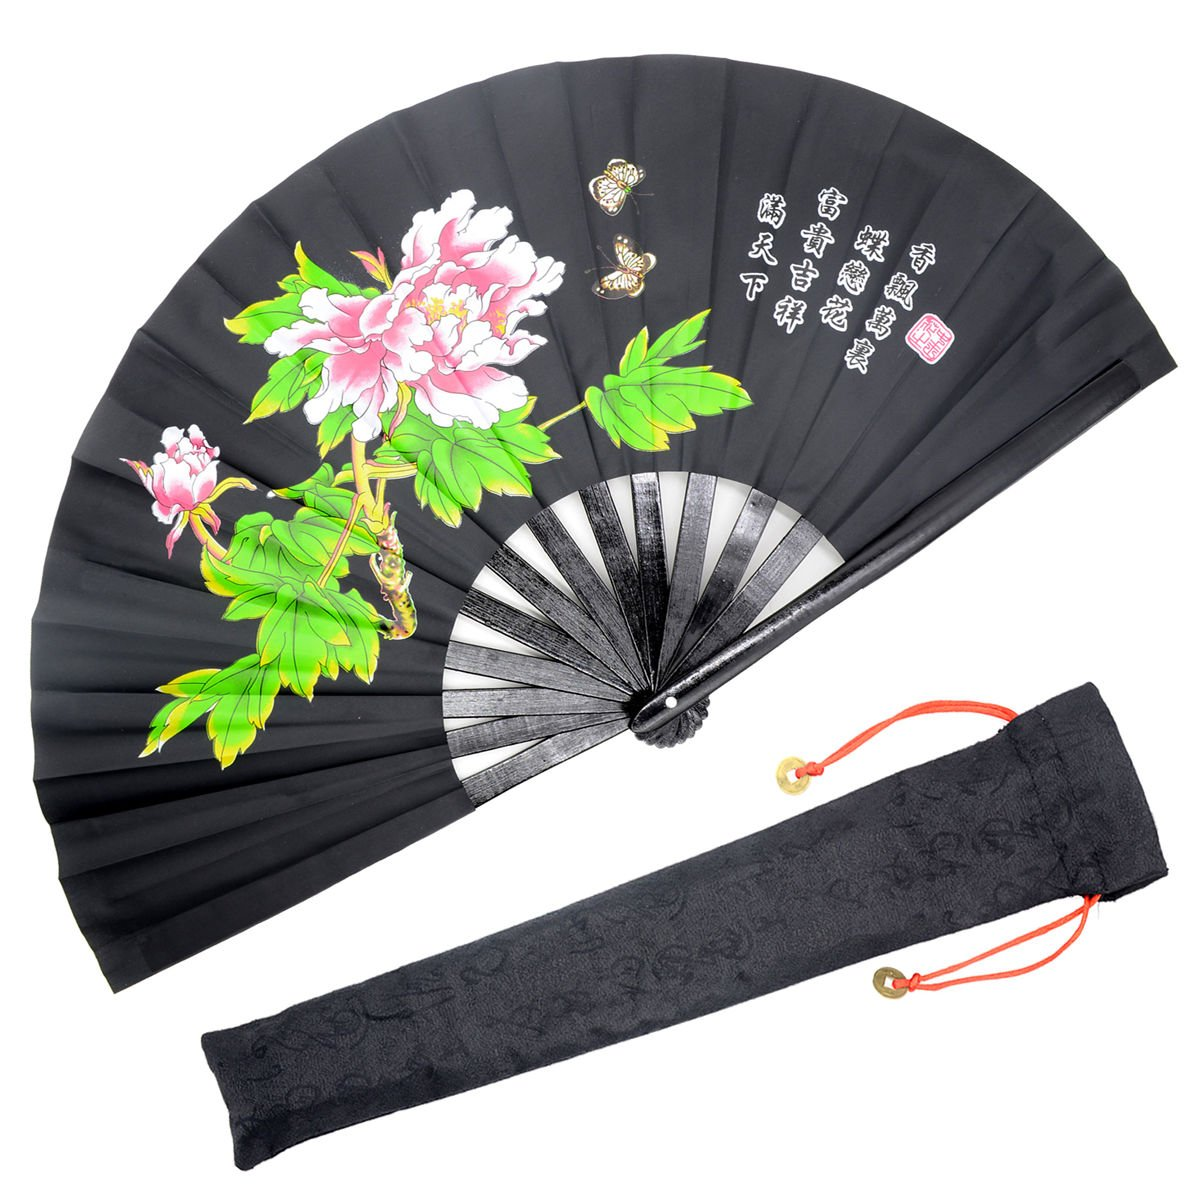 OMyTea Bamboo Large Rave Folding Hand Fan for Men/Women - Chinese Japanese Kung Fu Tai Chi Handheld Fan with Fabric Case - for Performance, Decorations, Dancing, Festival, Gift (Black Peony)